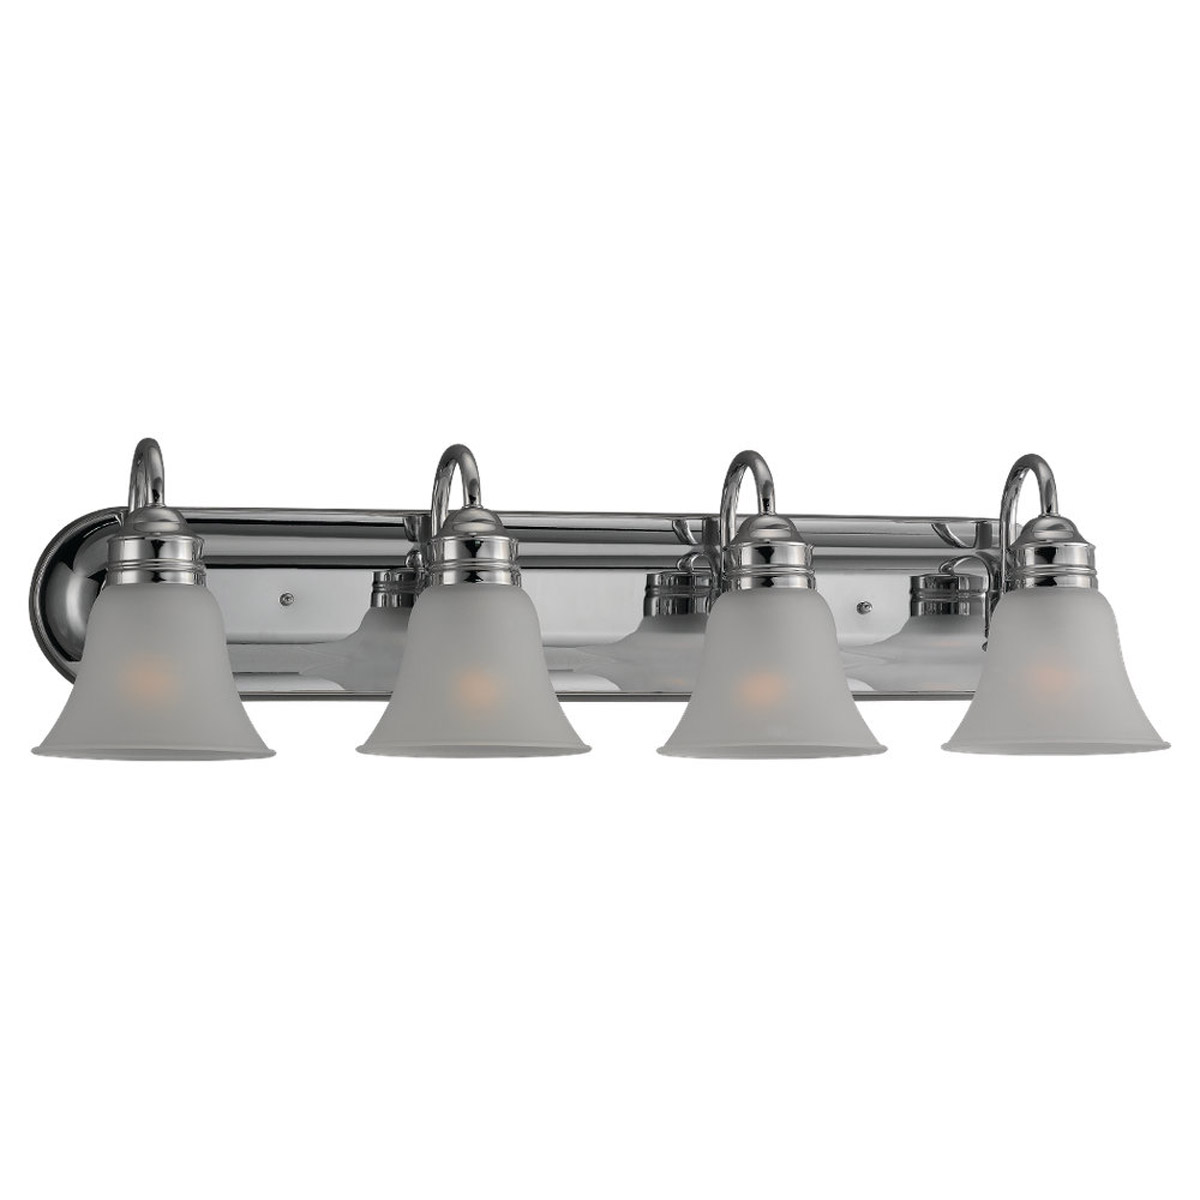 Sea Gull Lighting Gladstone 4 Light Bath Vanity in Chrome 49853BLE-05 photo